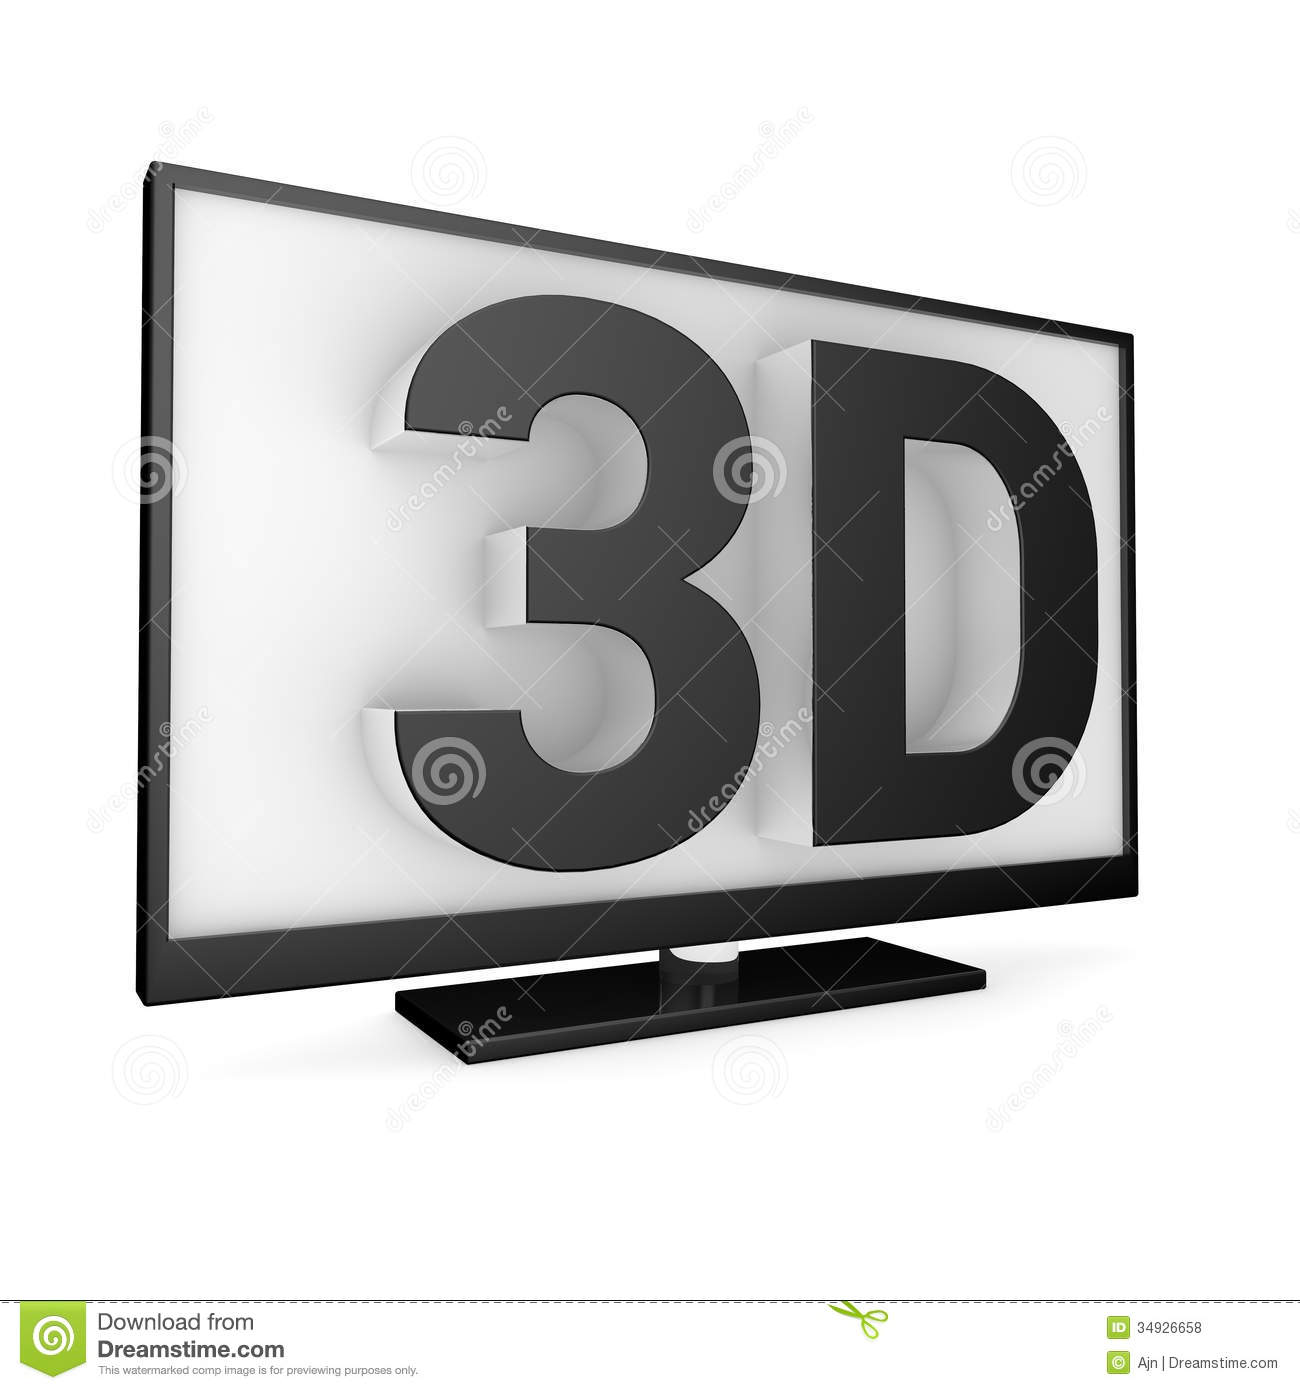 Televisione 3D